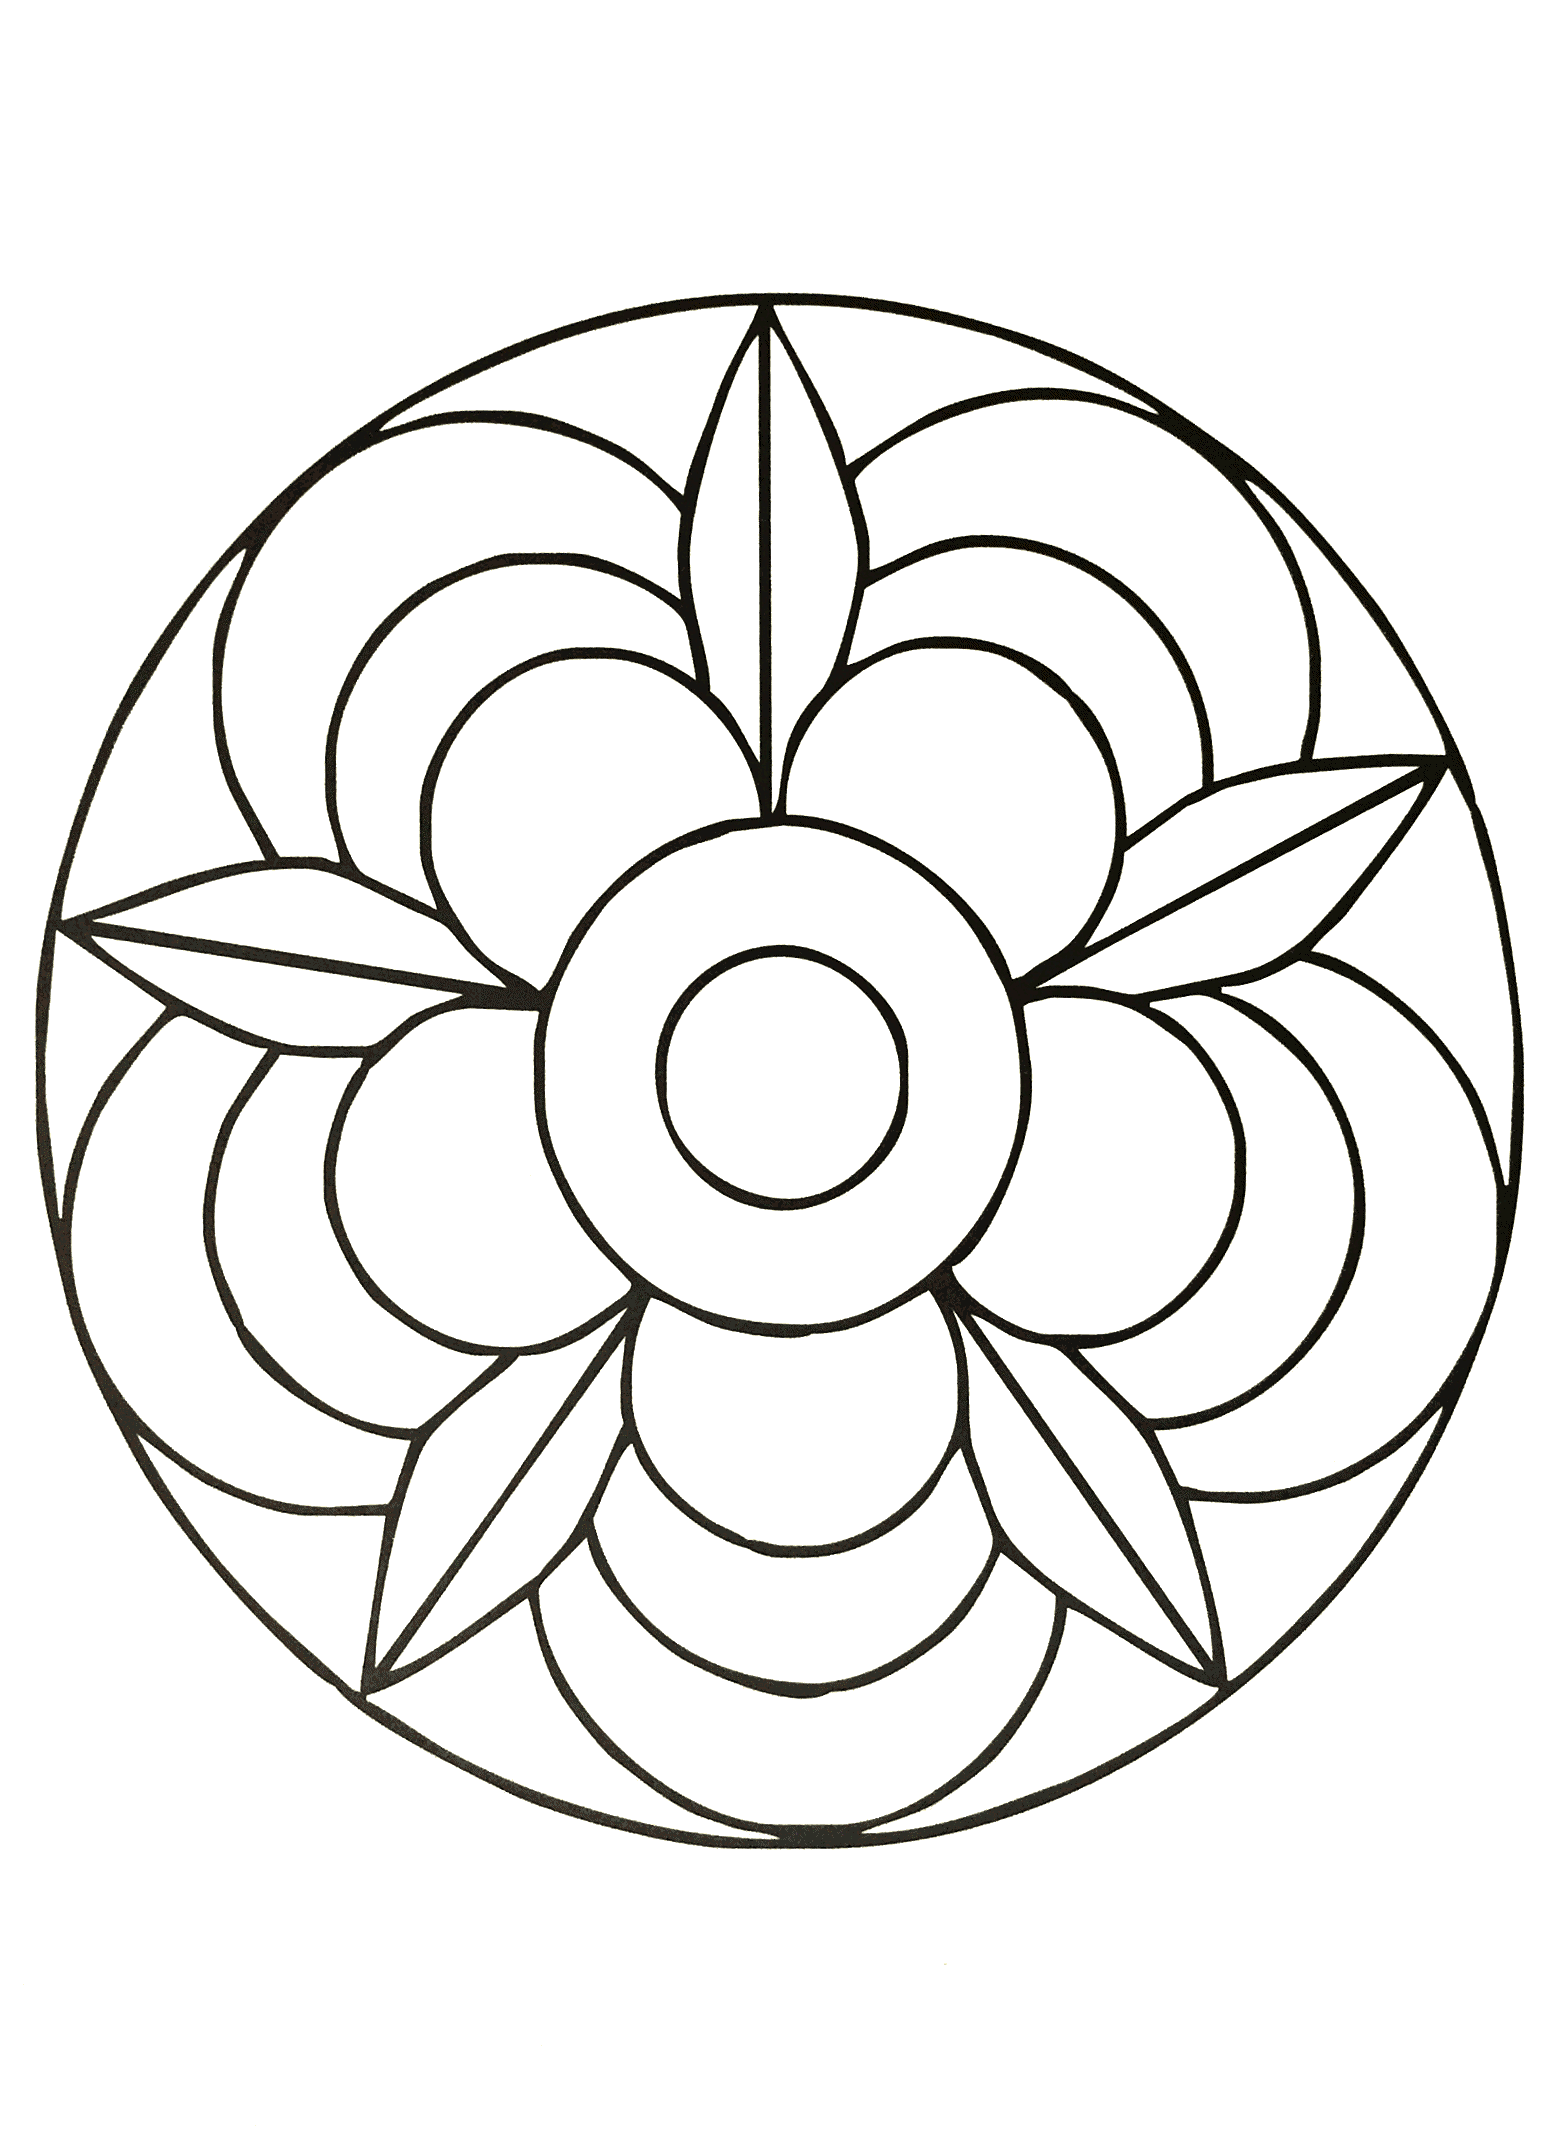 Grab Your New Coloring Pages Simple Free Https Gethighit Com New Coloring Pages Simple Free Check M Mandala Coloring Pages Mandala Coloring Simple Mandala